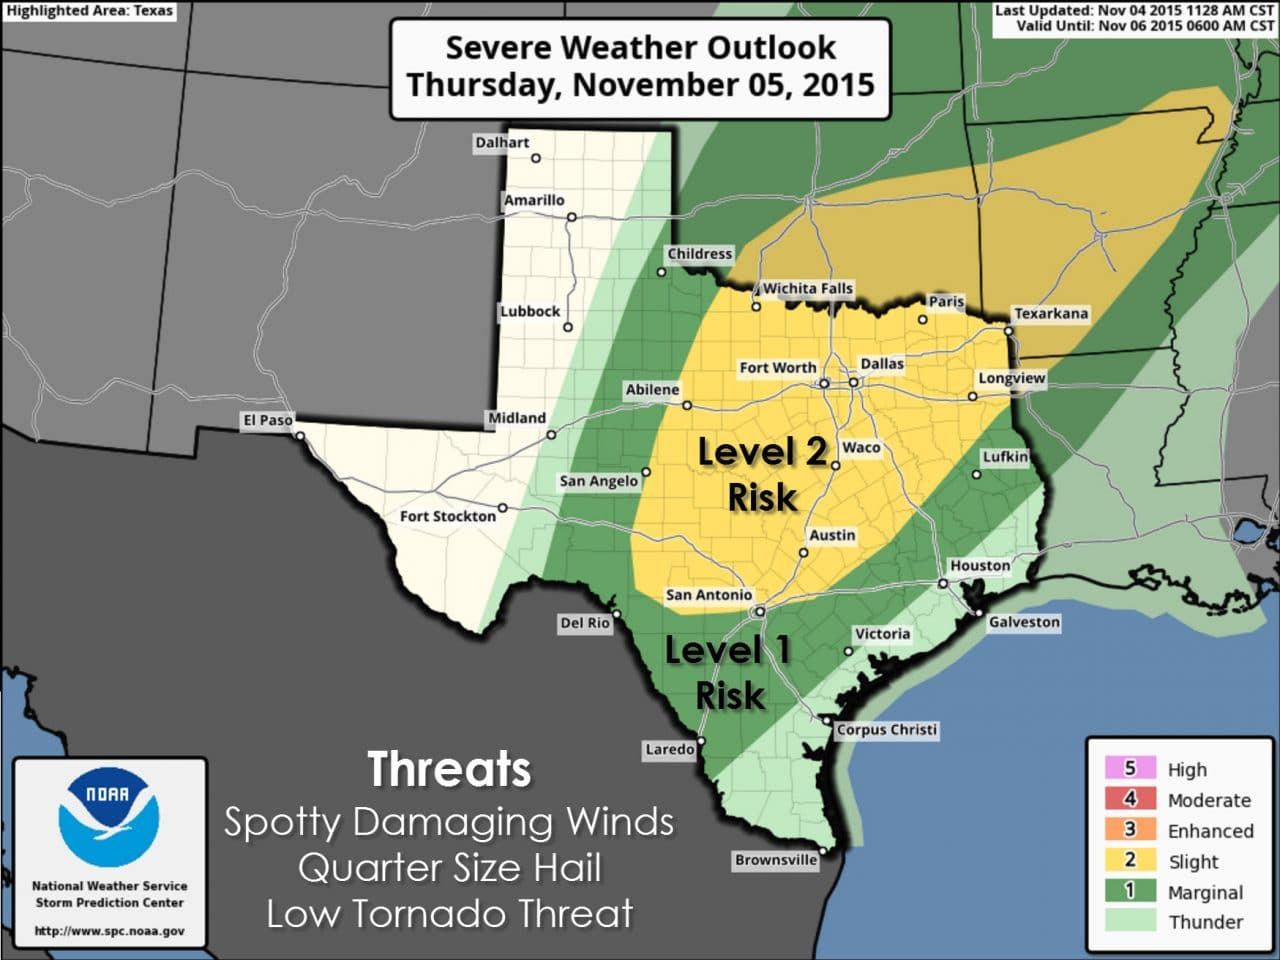 Why the Tornado Risk for Thursday is Low